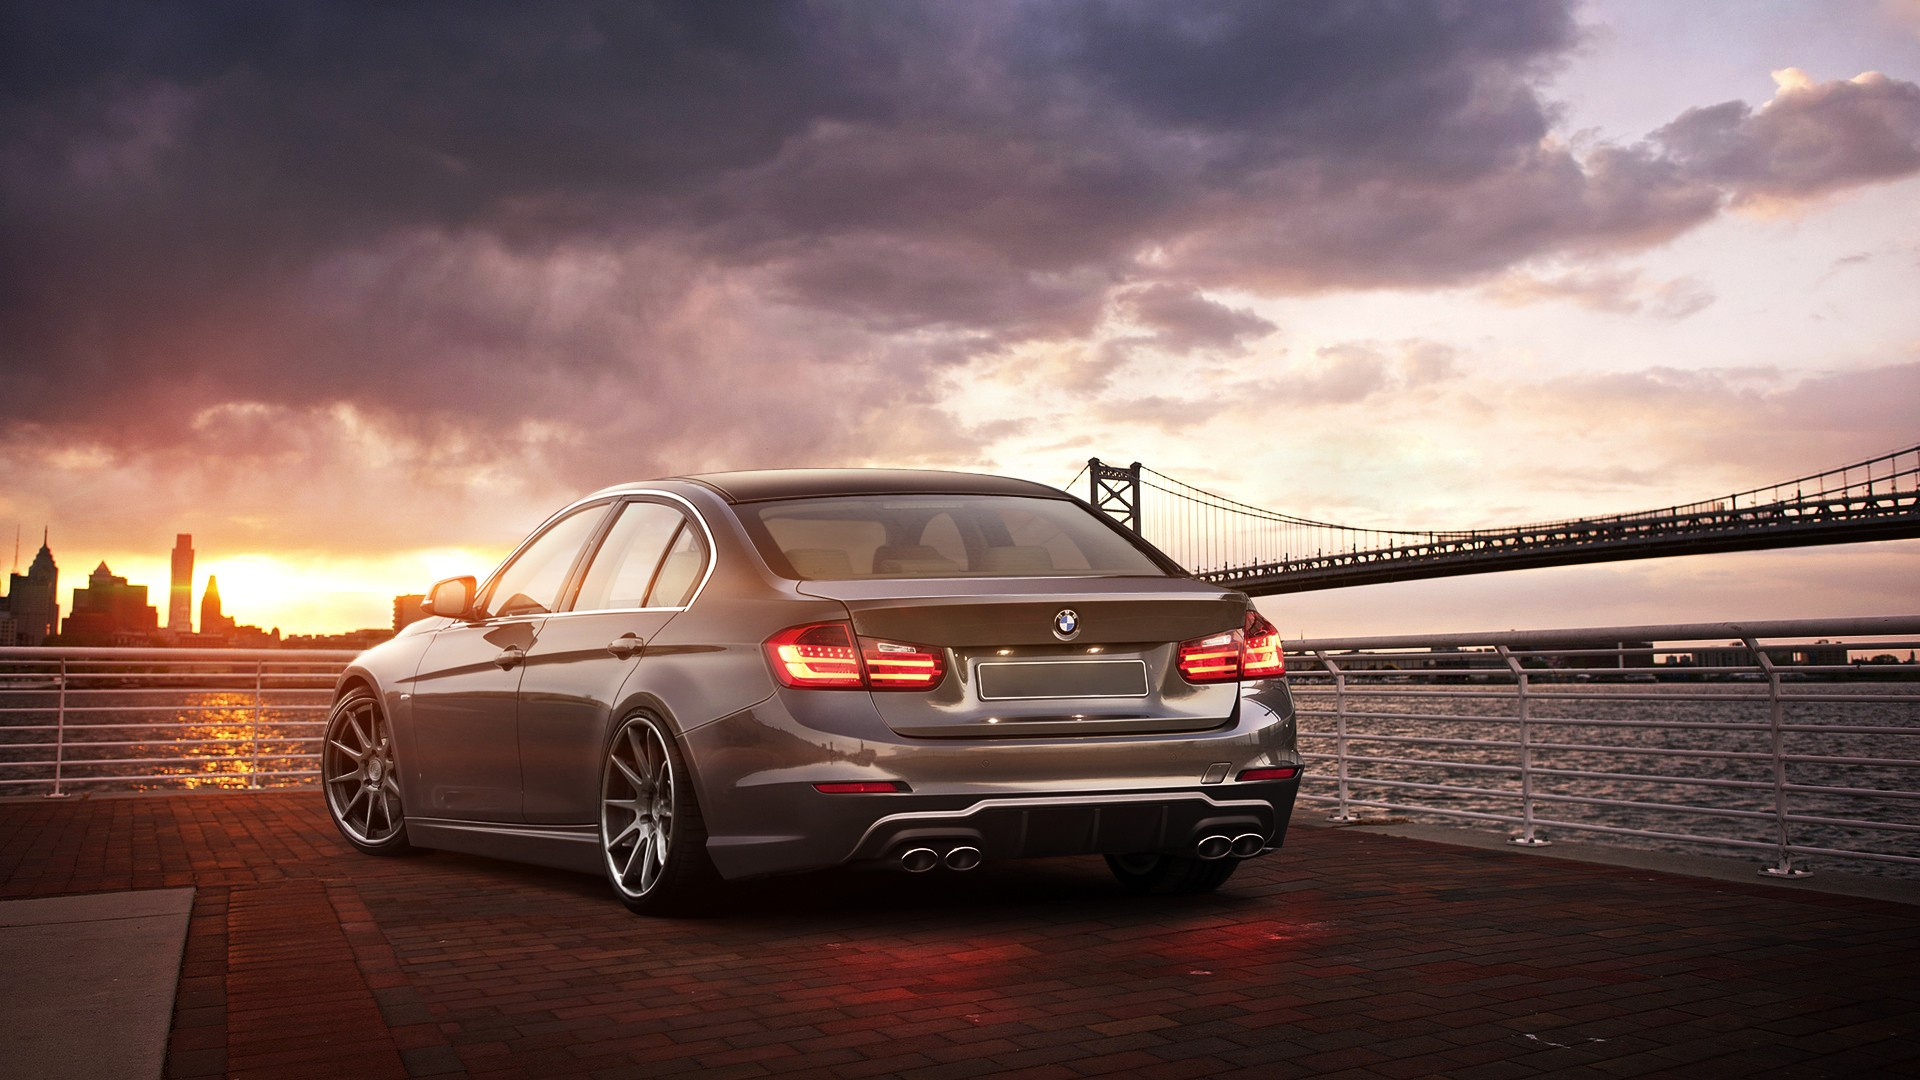 Free Download Bmw 3 Series F30 Wallpaper Cars Wallpaper